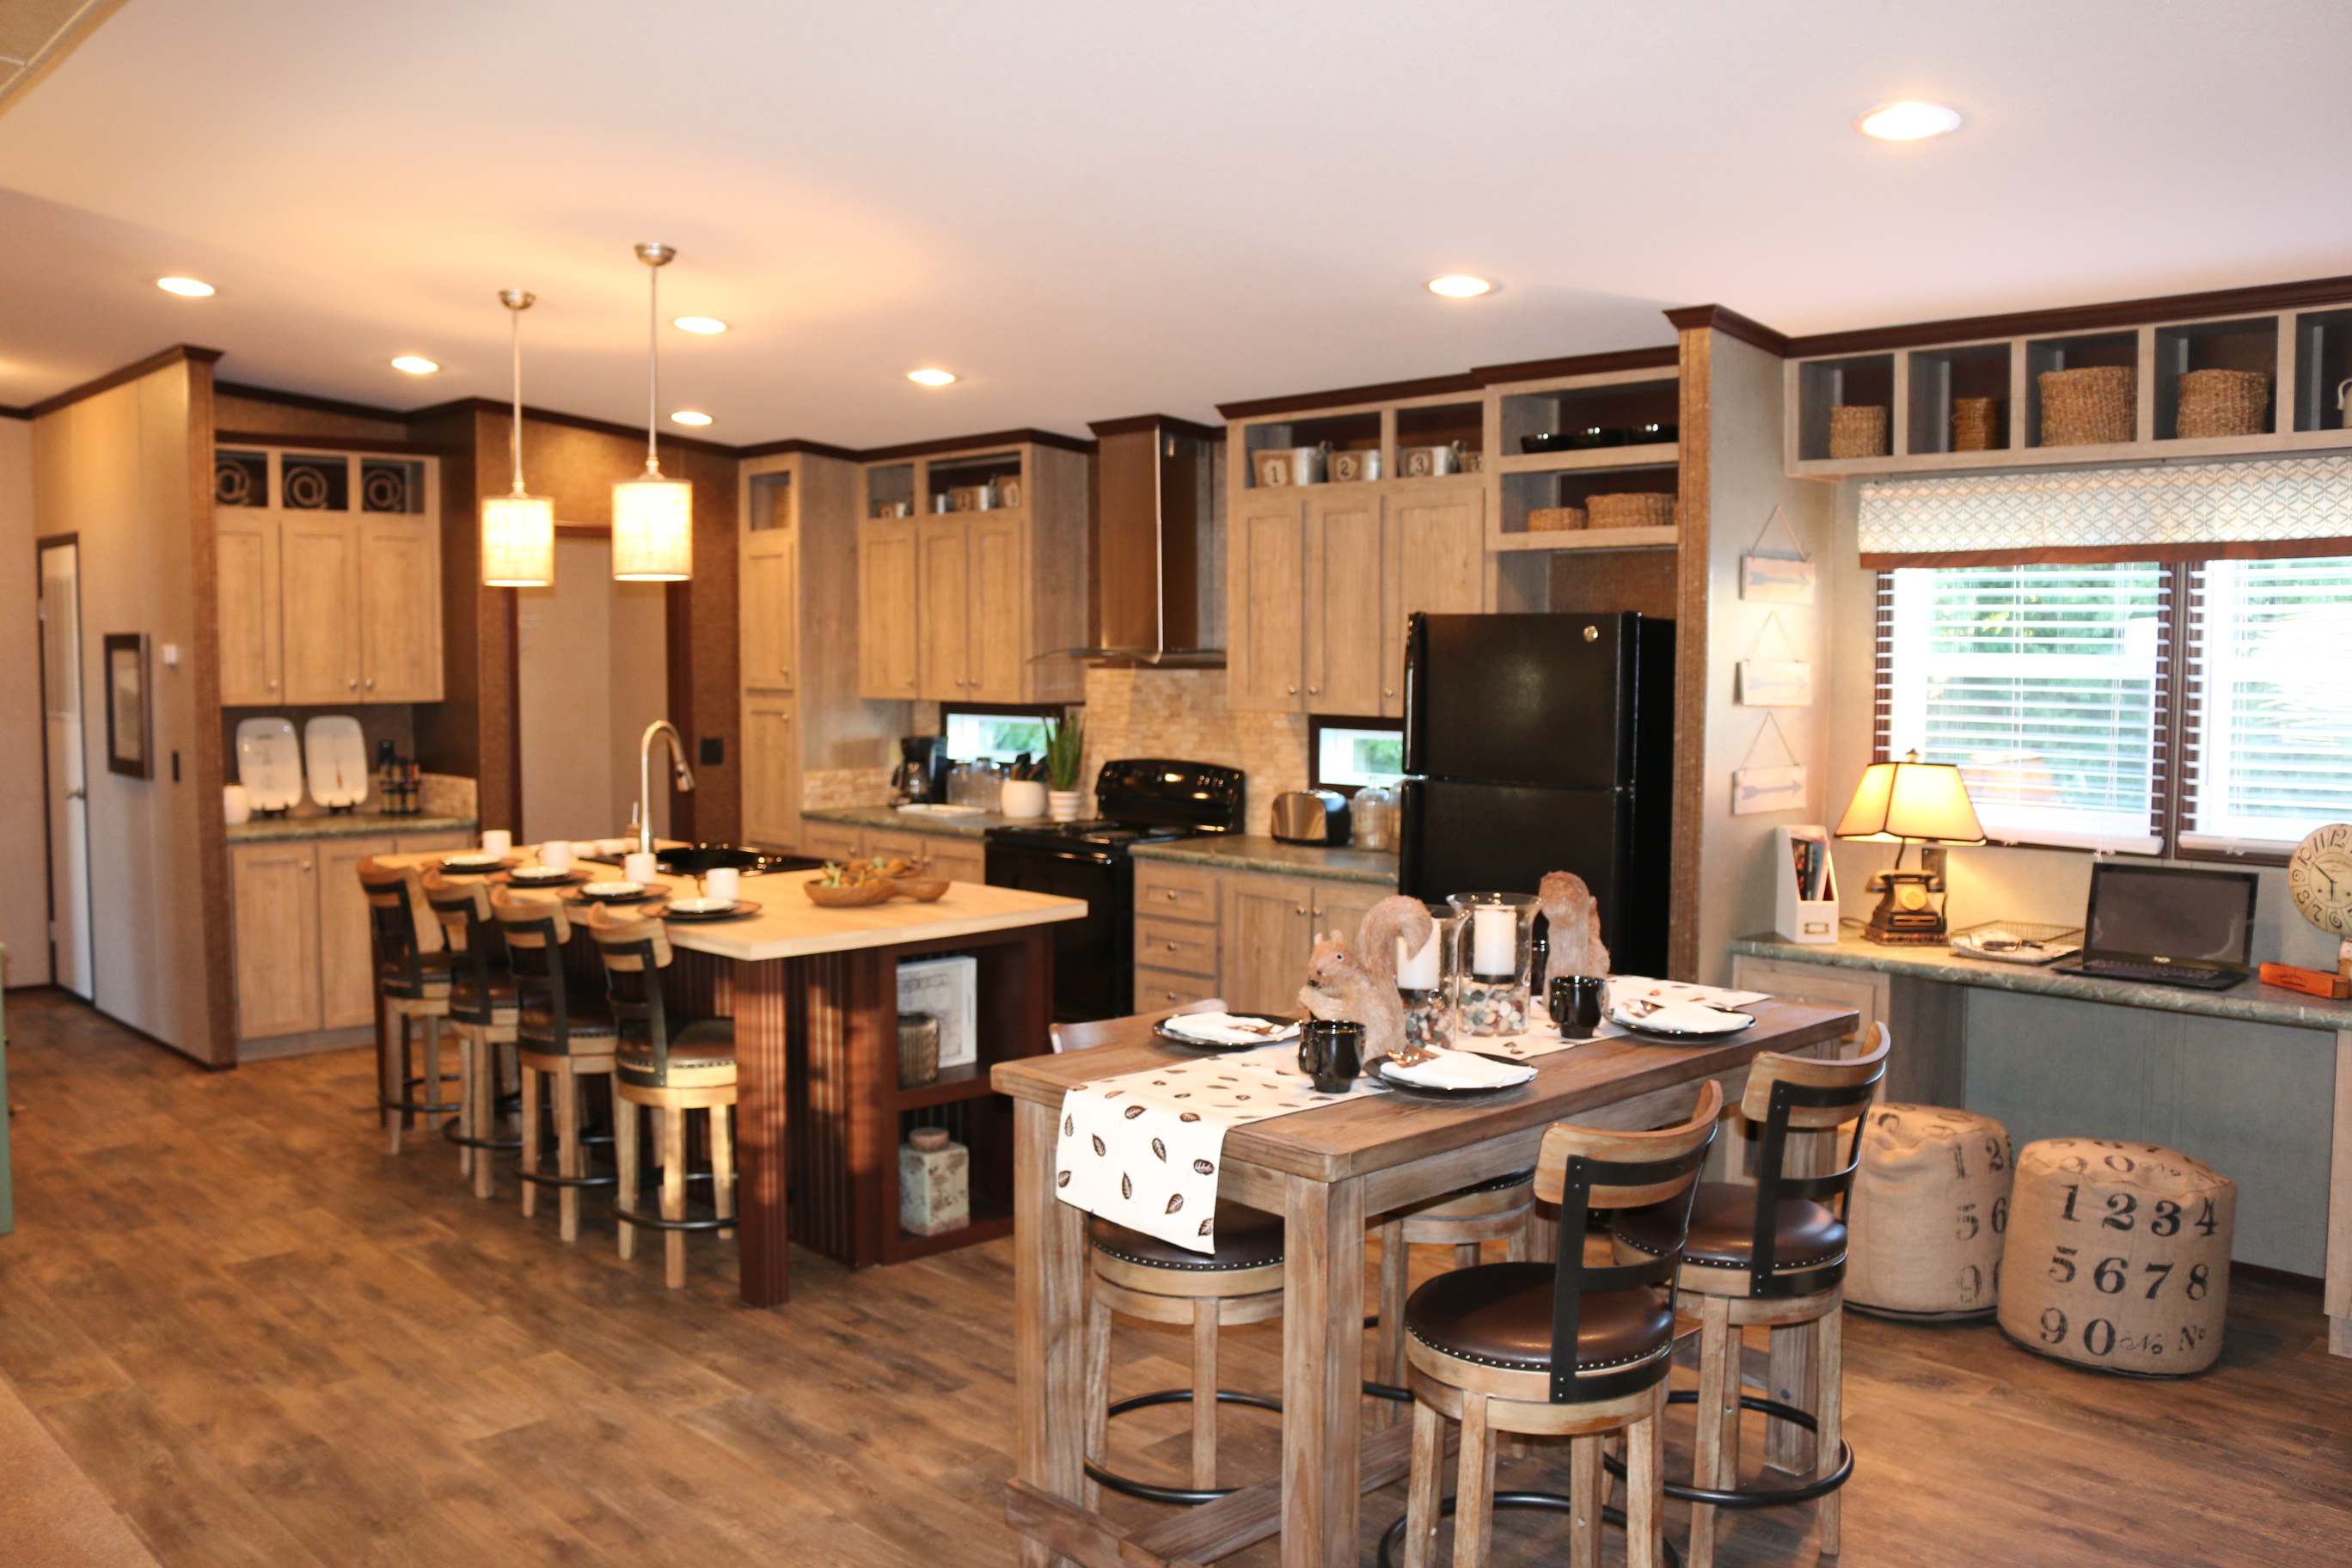 10 Kitchen Decor Ideas For Your Mobile Home Rental: Top Tips For Financing A Manufactured Home